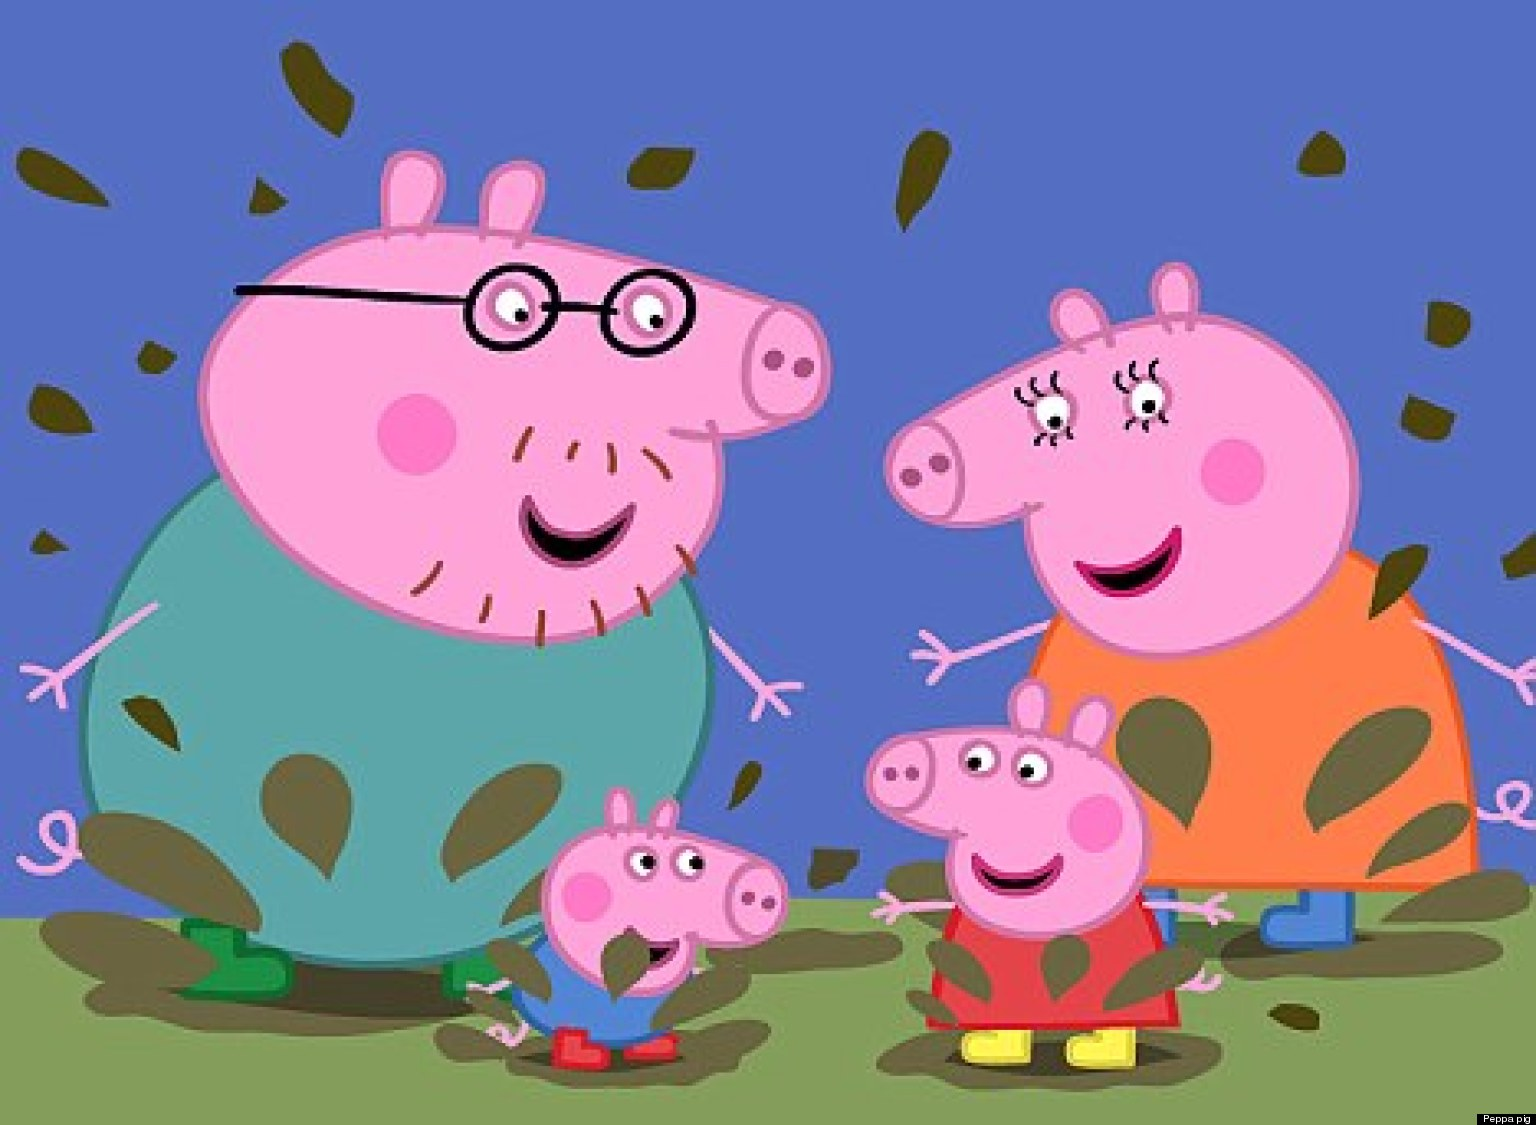 peppa pig facebook page hacked with go to hell message